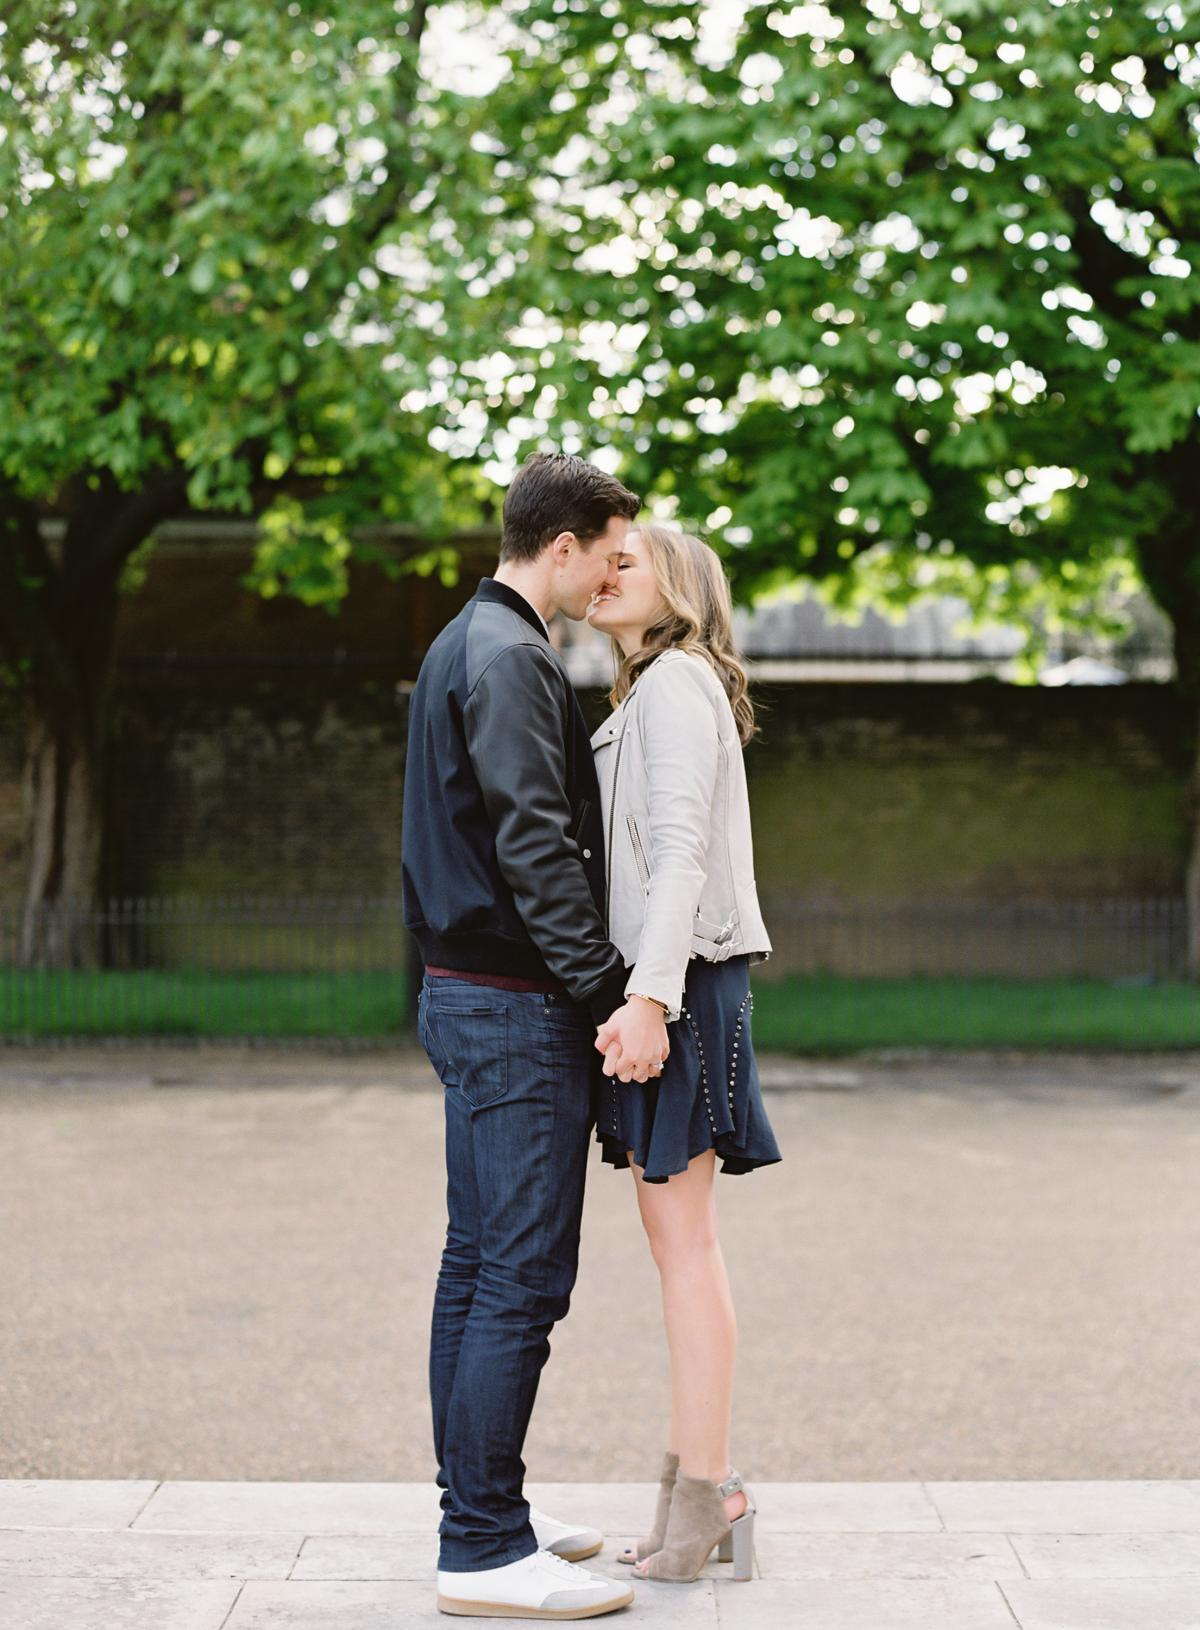 London England Engagement Photos Omalley Photographers 0015